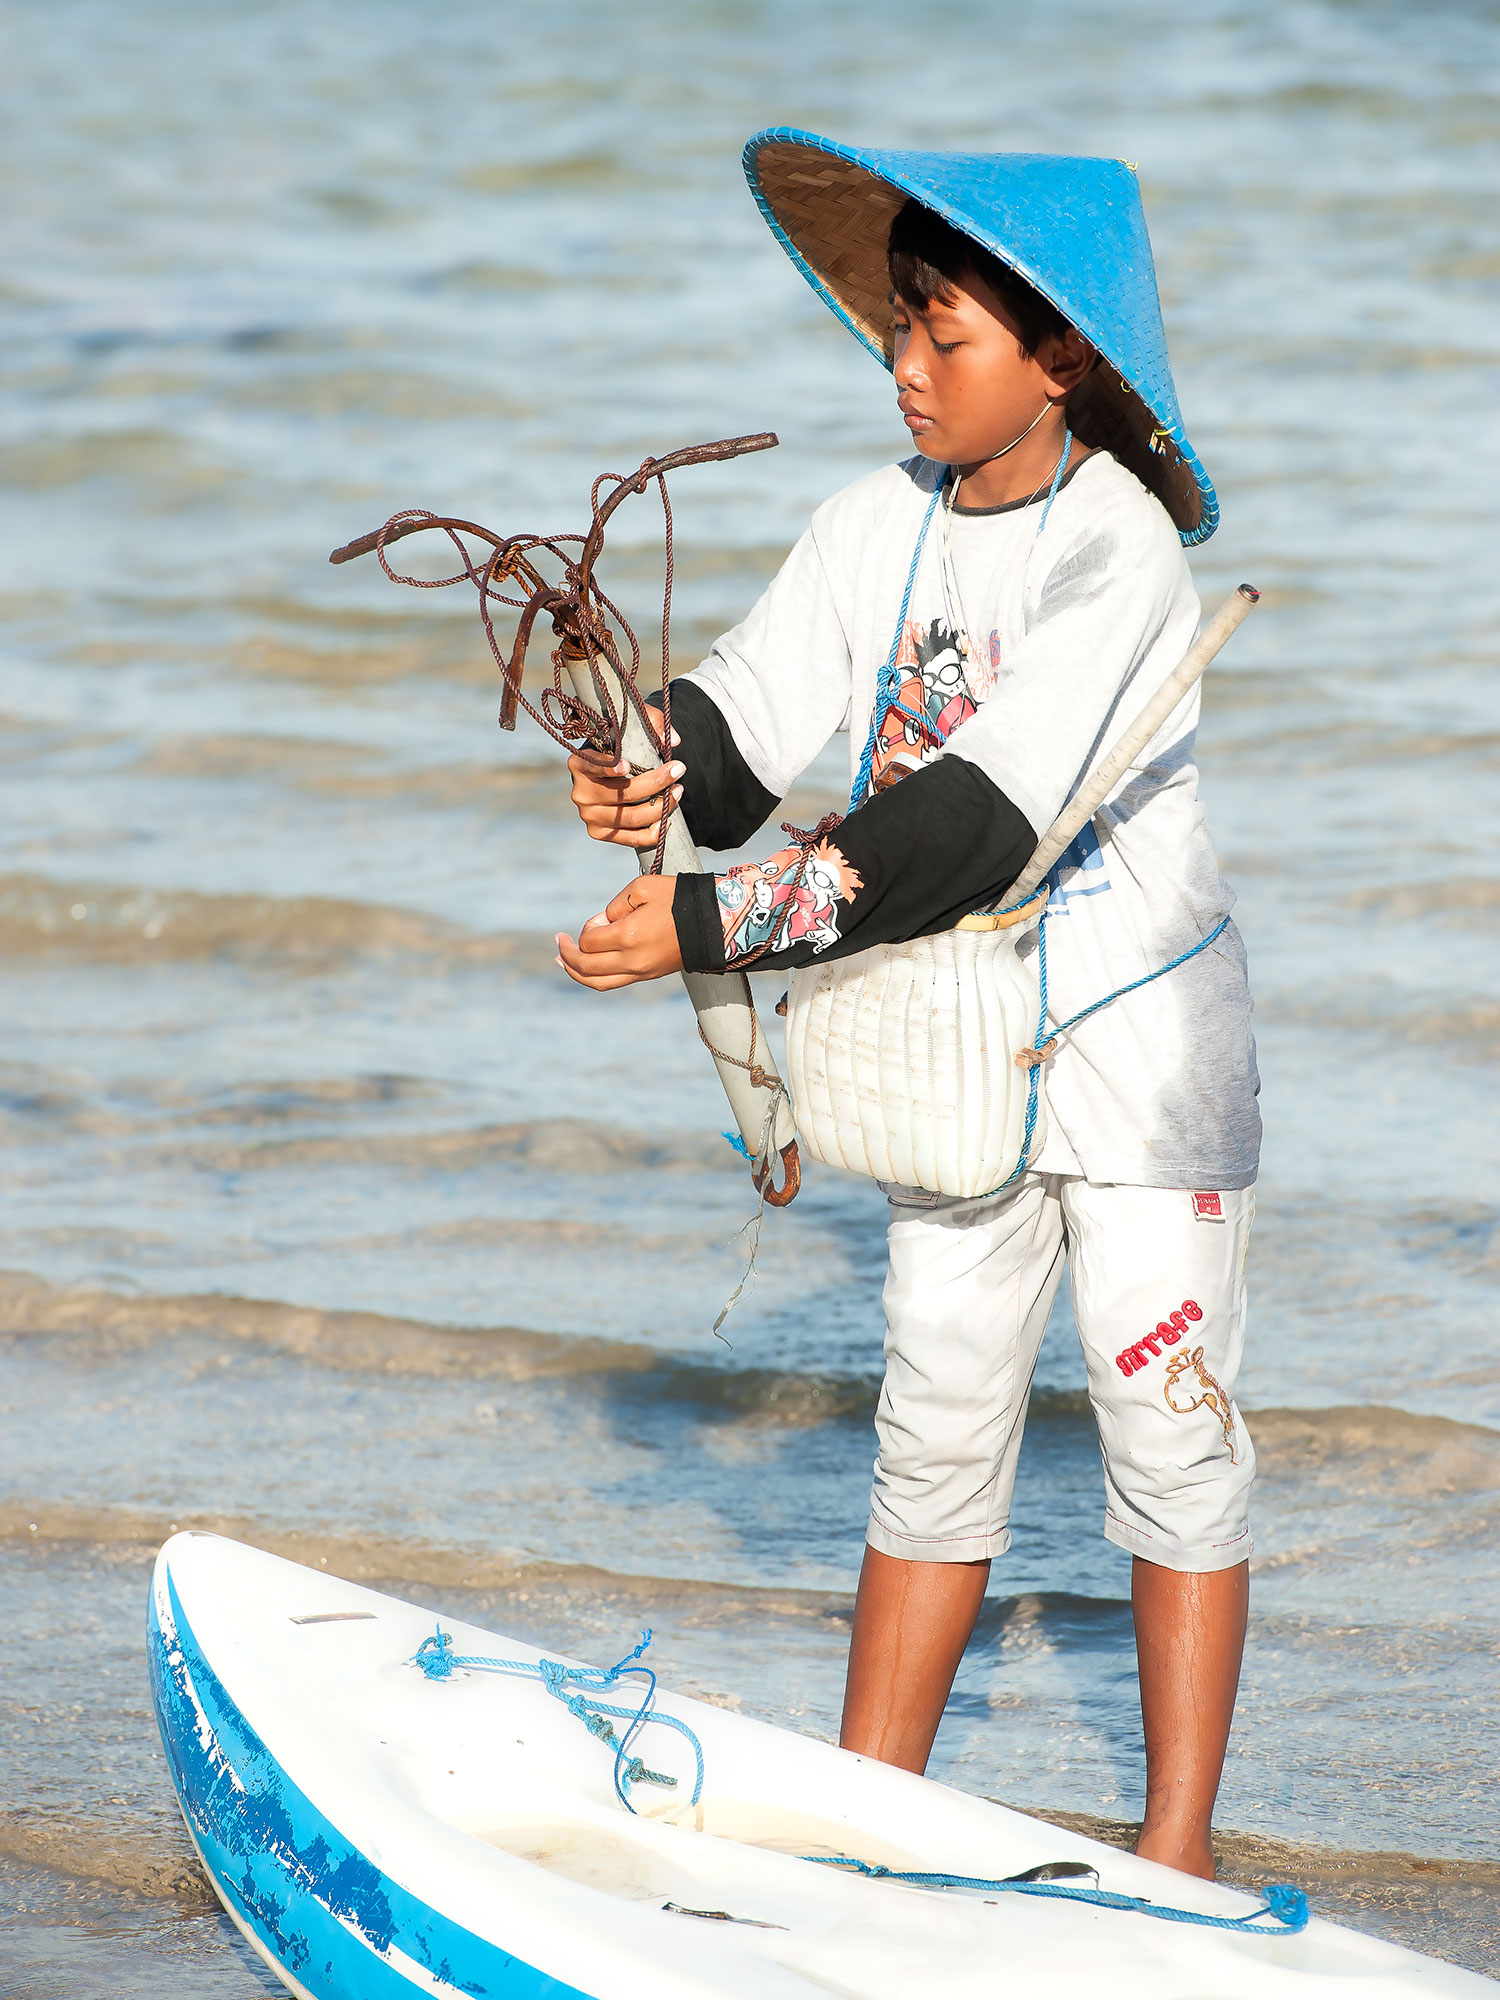 Bali fishing boy